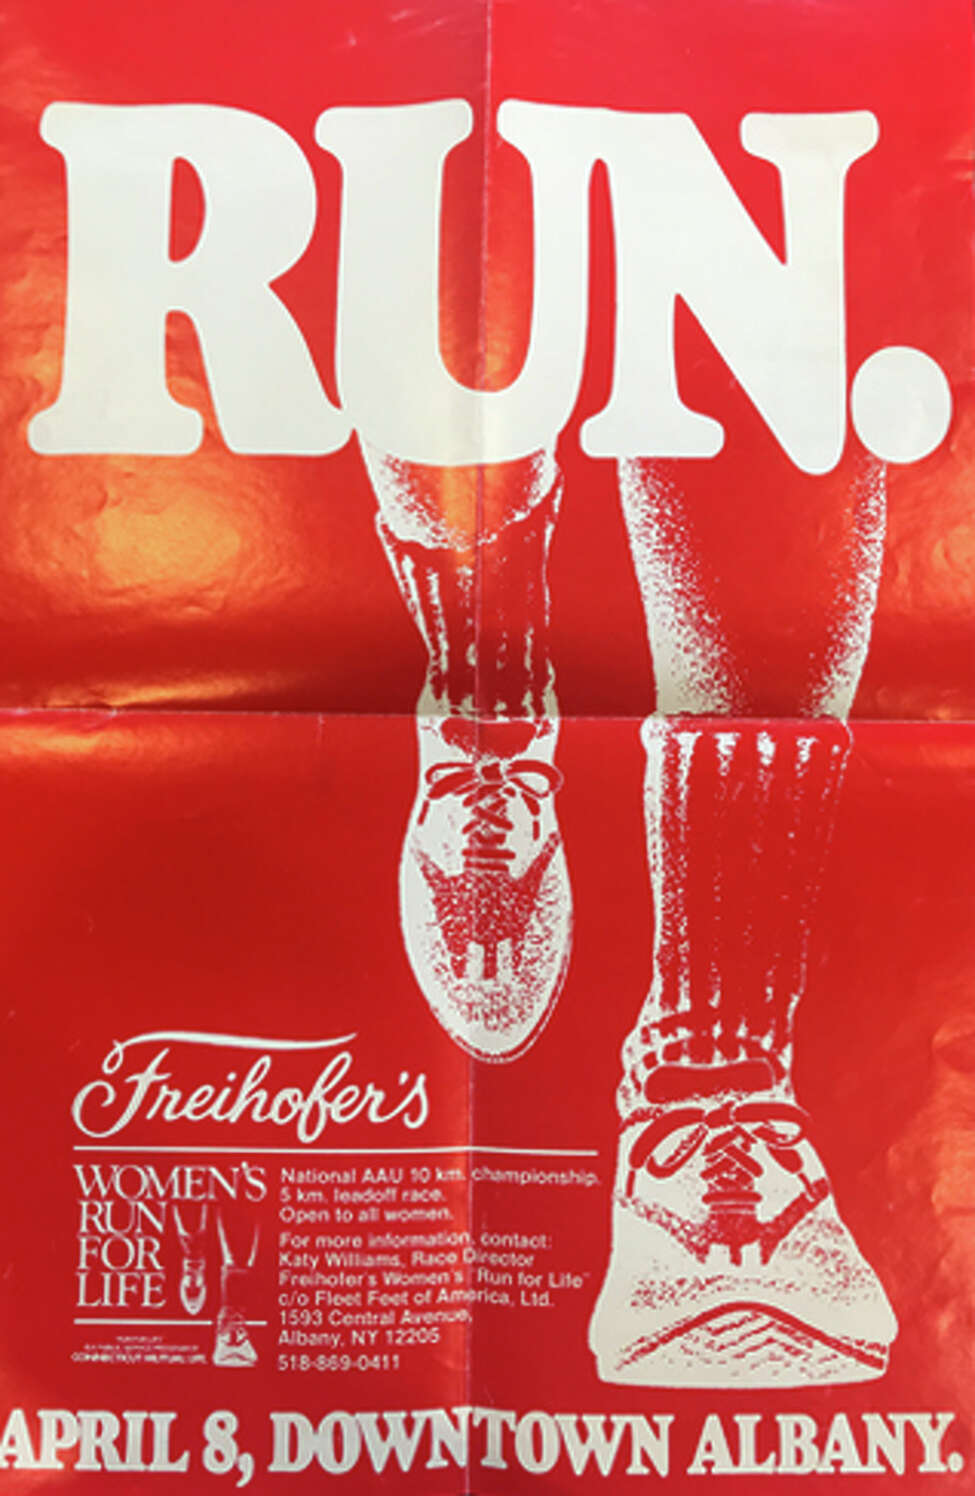 Click through the photos for a timeline of major milestones in the history of the Freihofer's Run for women. 1979: For the first two years of its existence, the Freihofer's Run for Woman was referred to as the